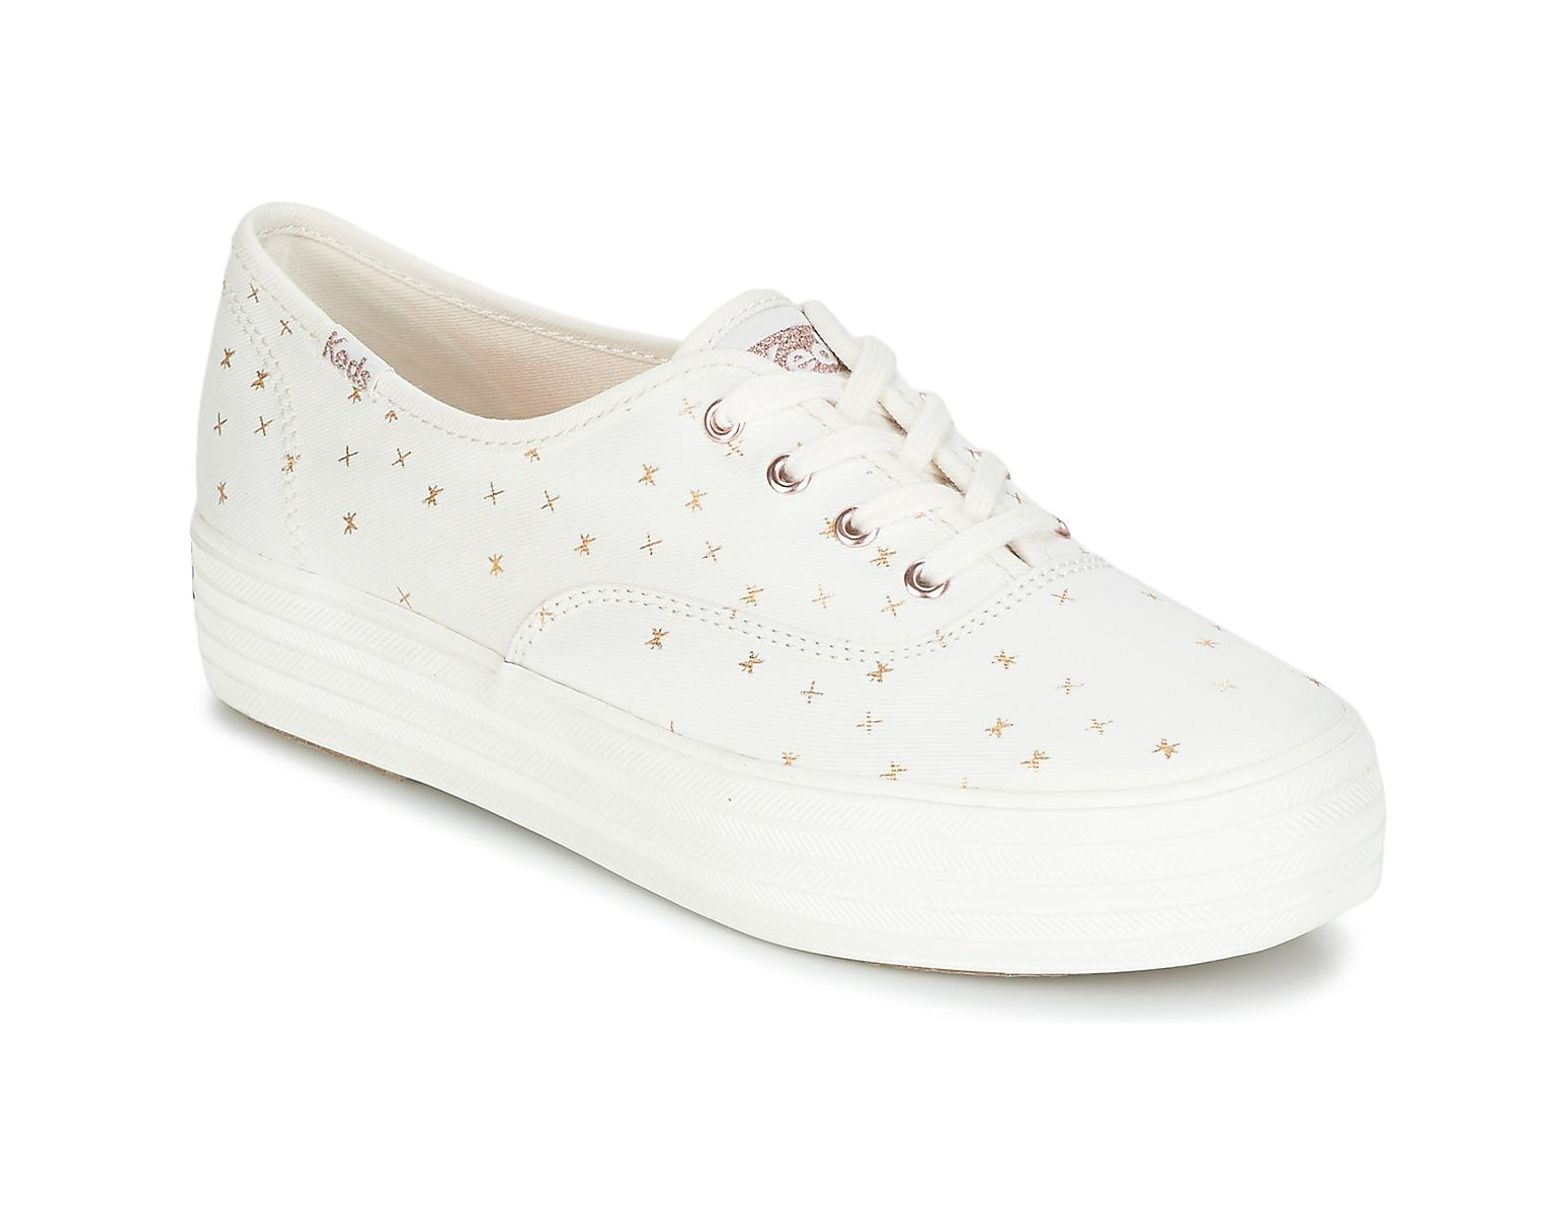 ce4c1421fe283 Keds Triple Ethereal Shoes (trainers) in White - Lyst